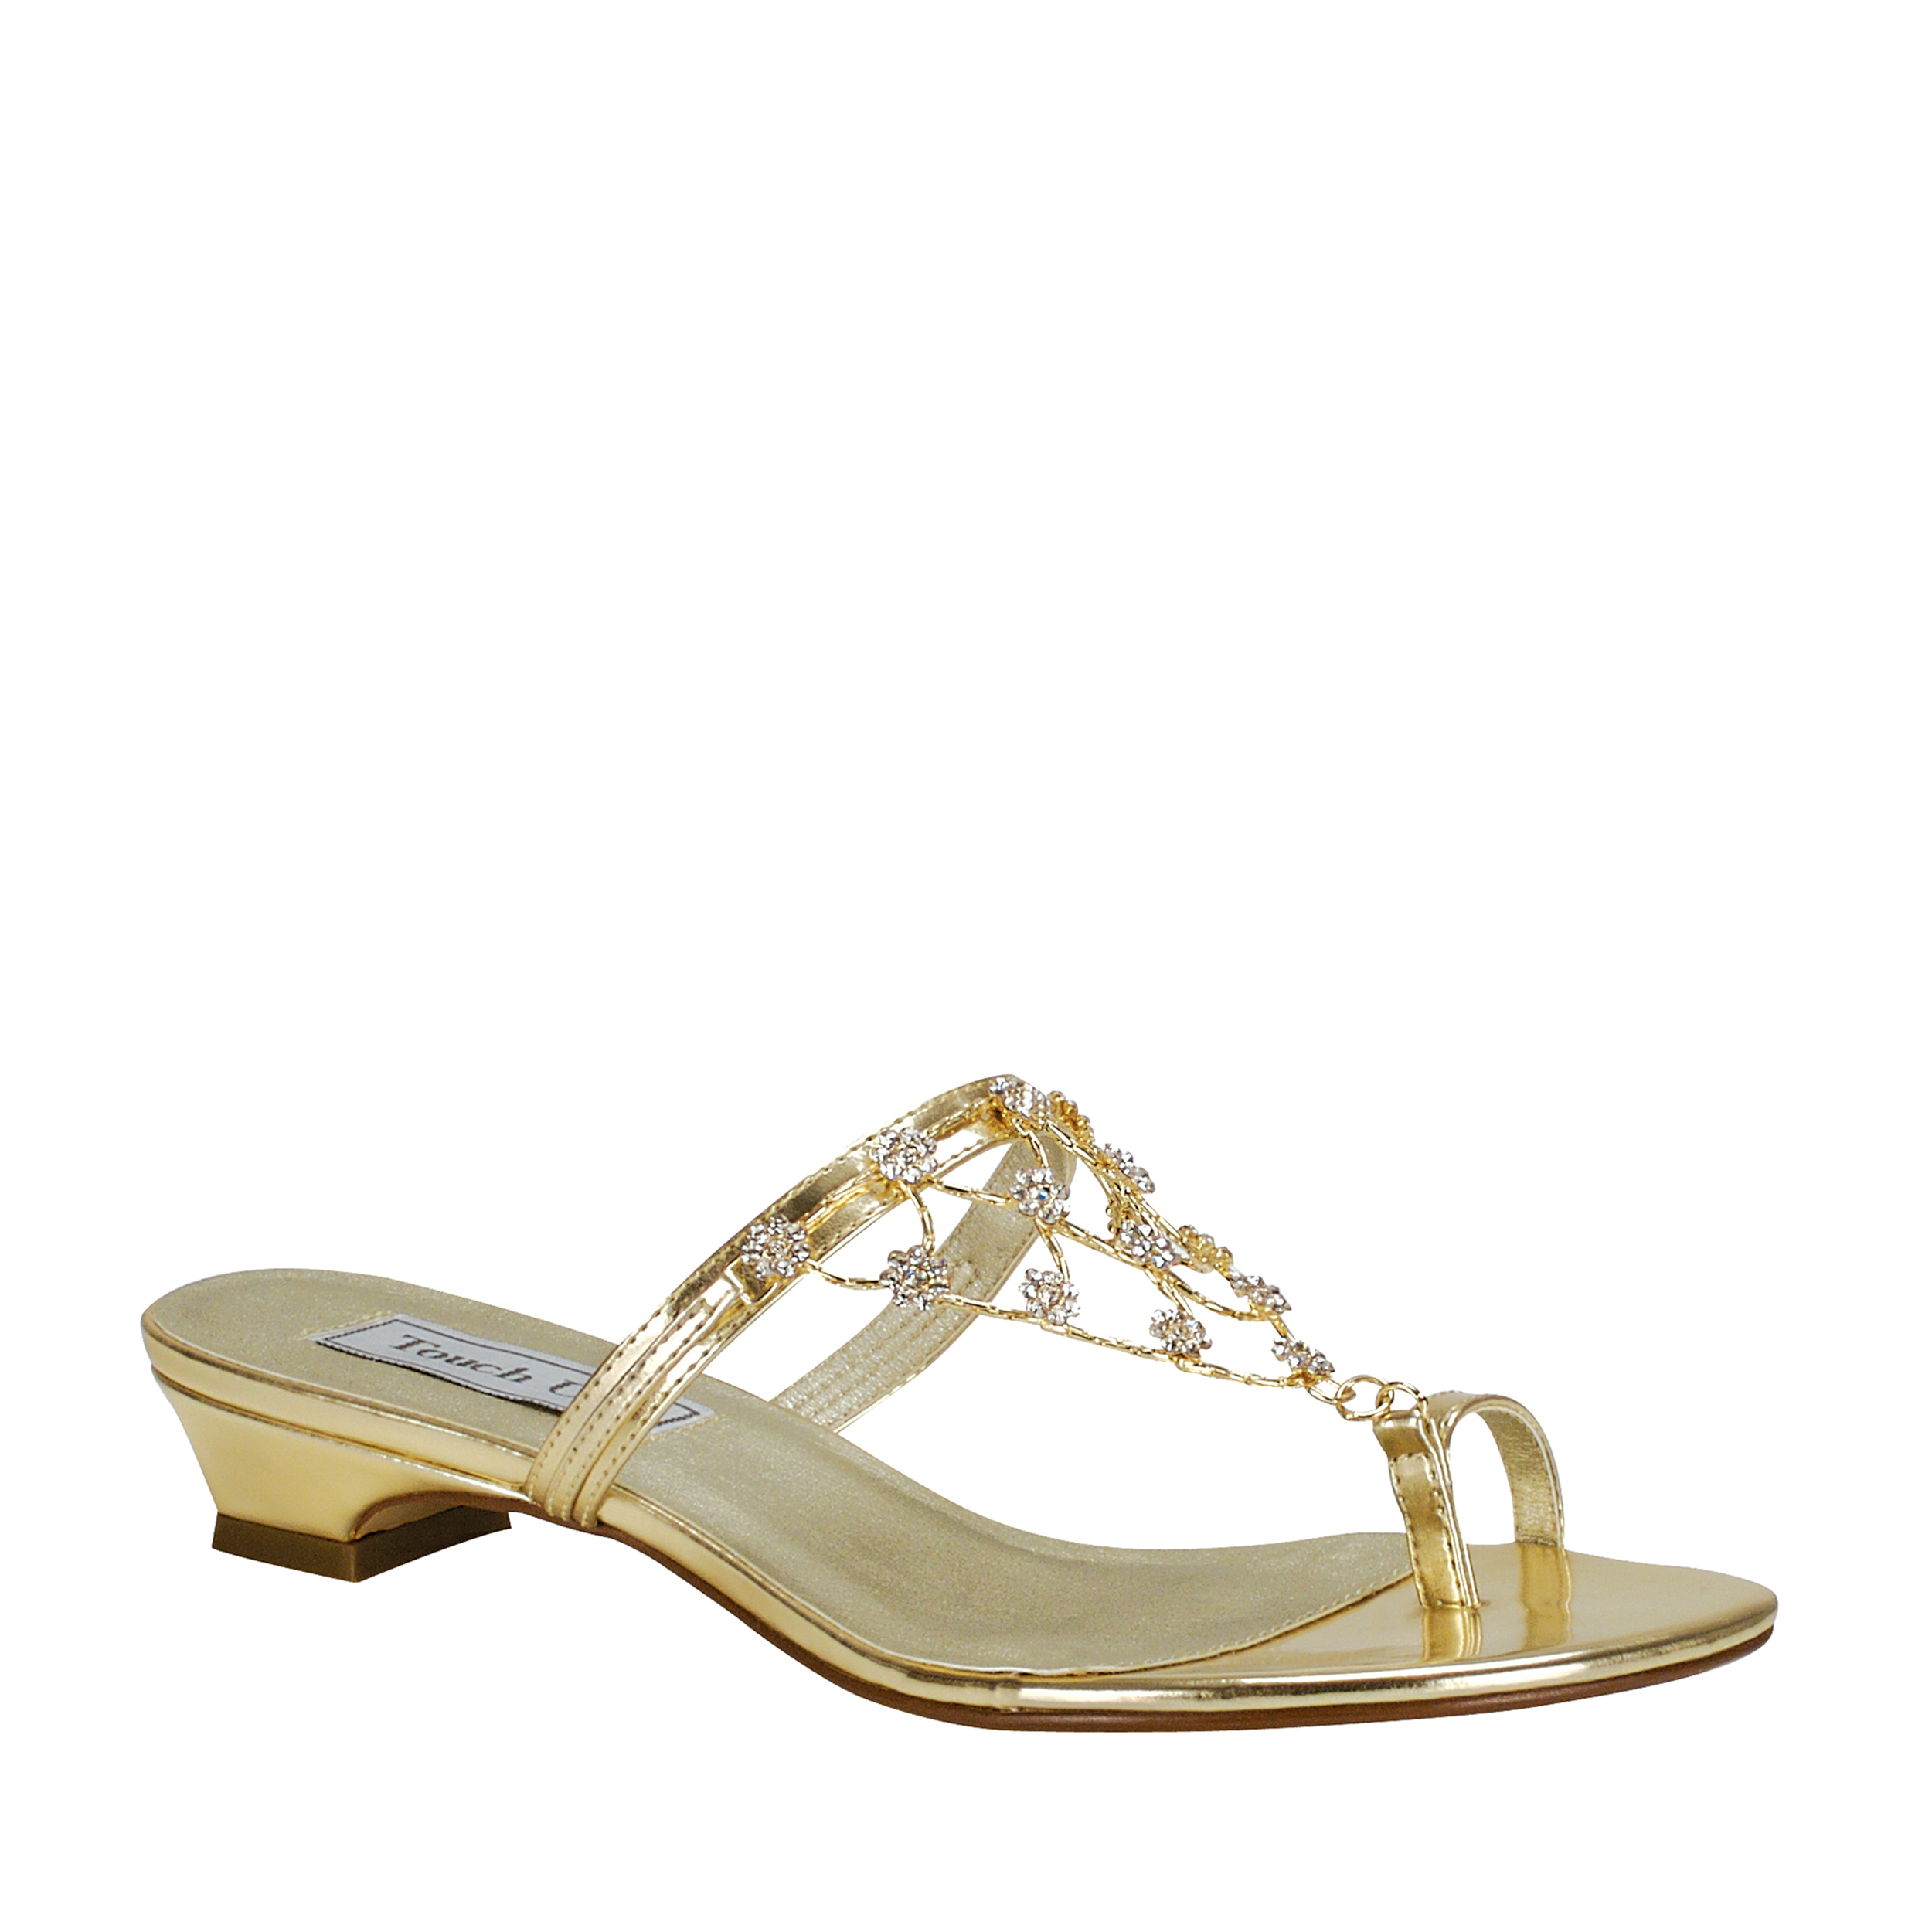 Touch Ups Womens Marcella Sandal,Gold,9.5 M